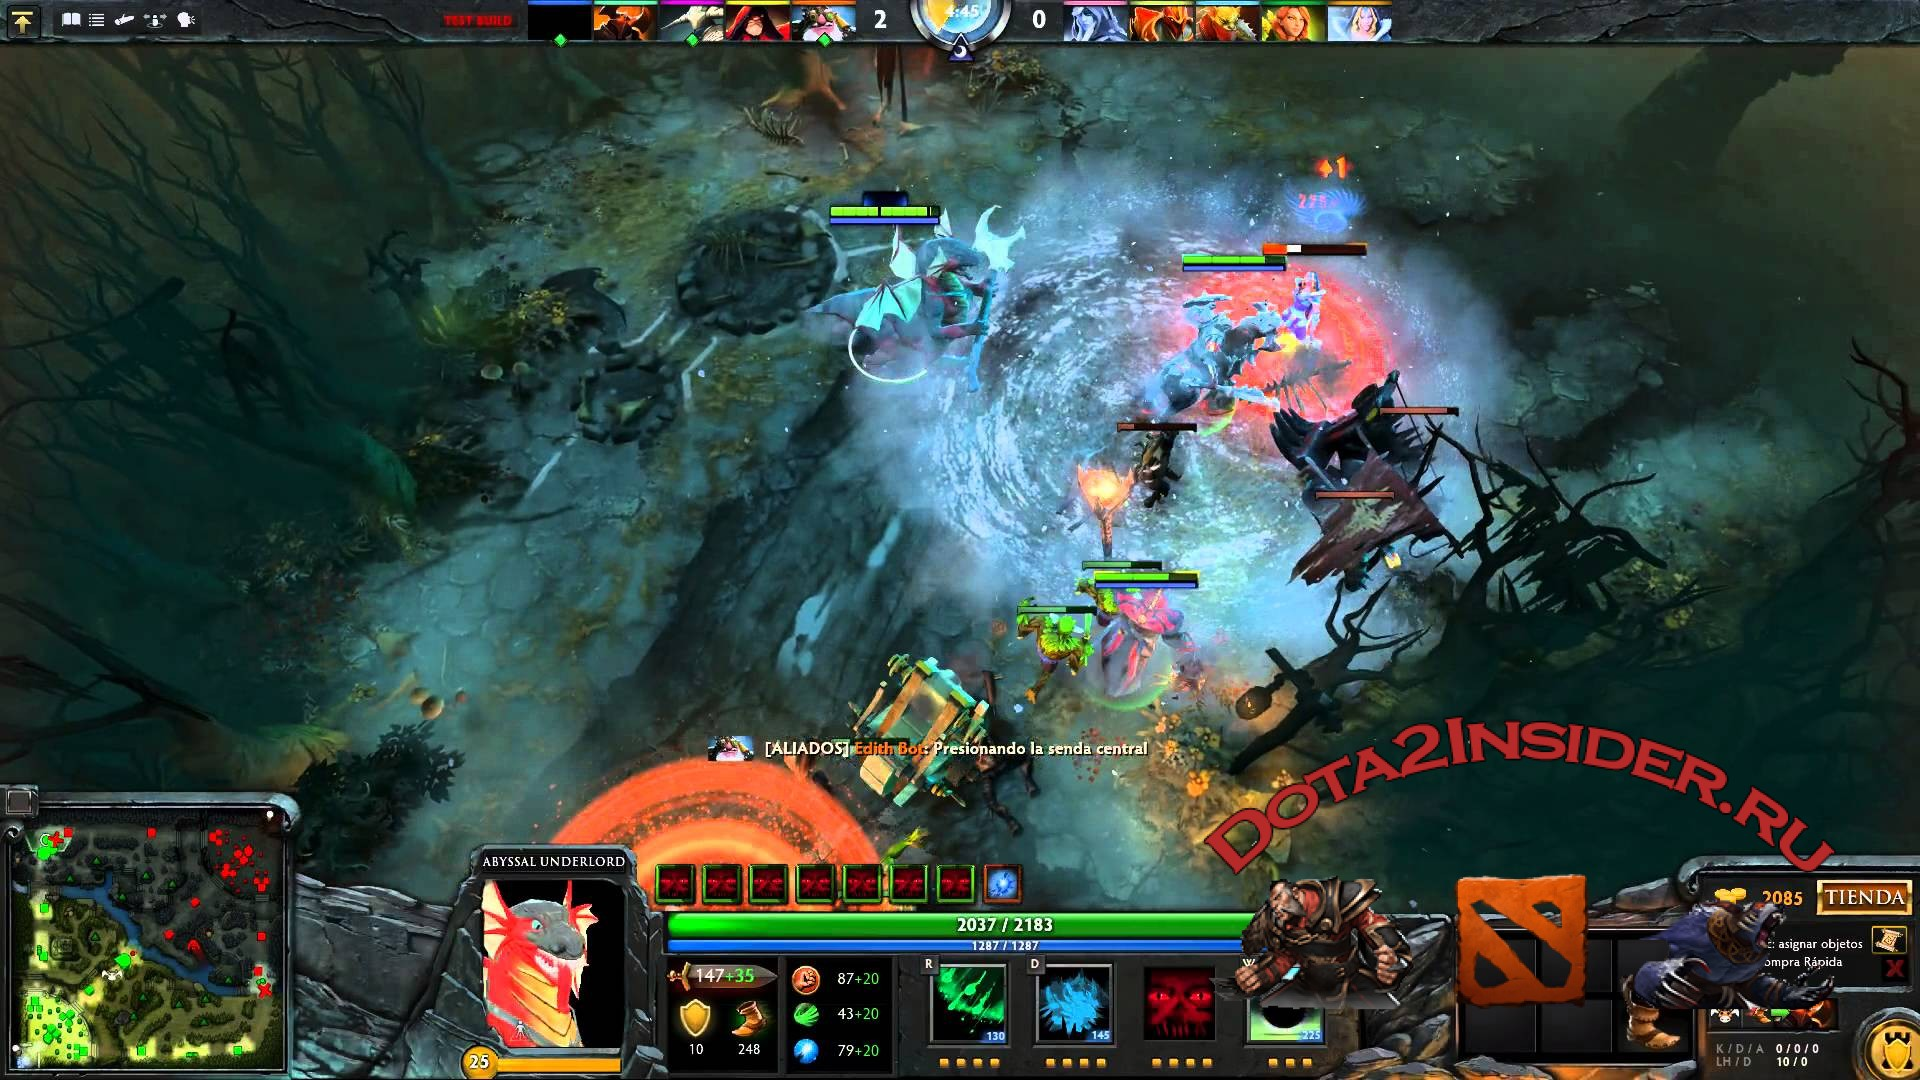 abyssal underlord dota 2 2016